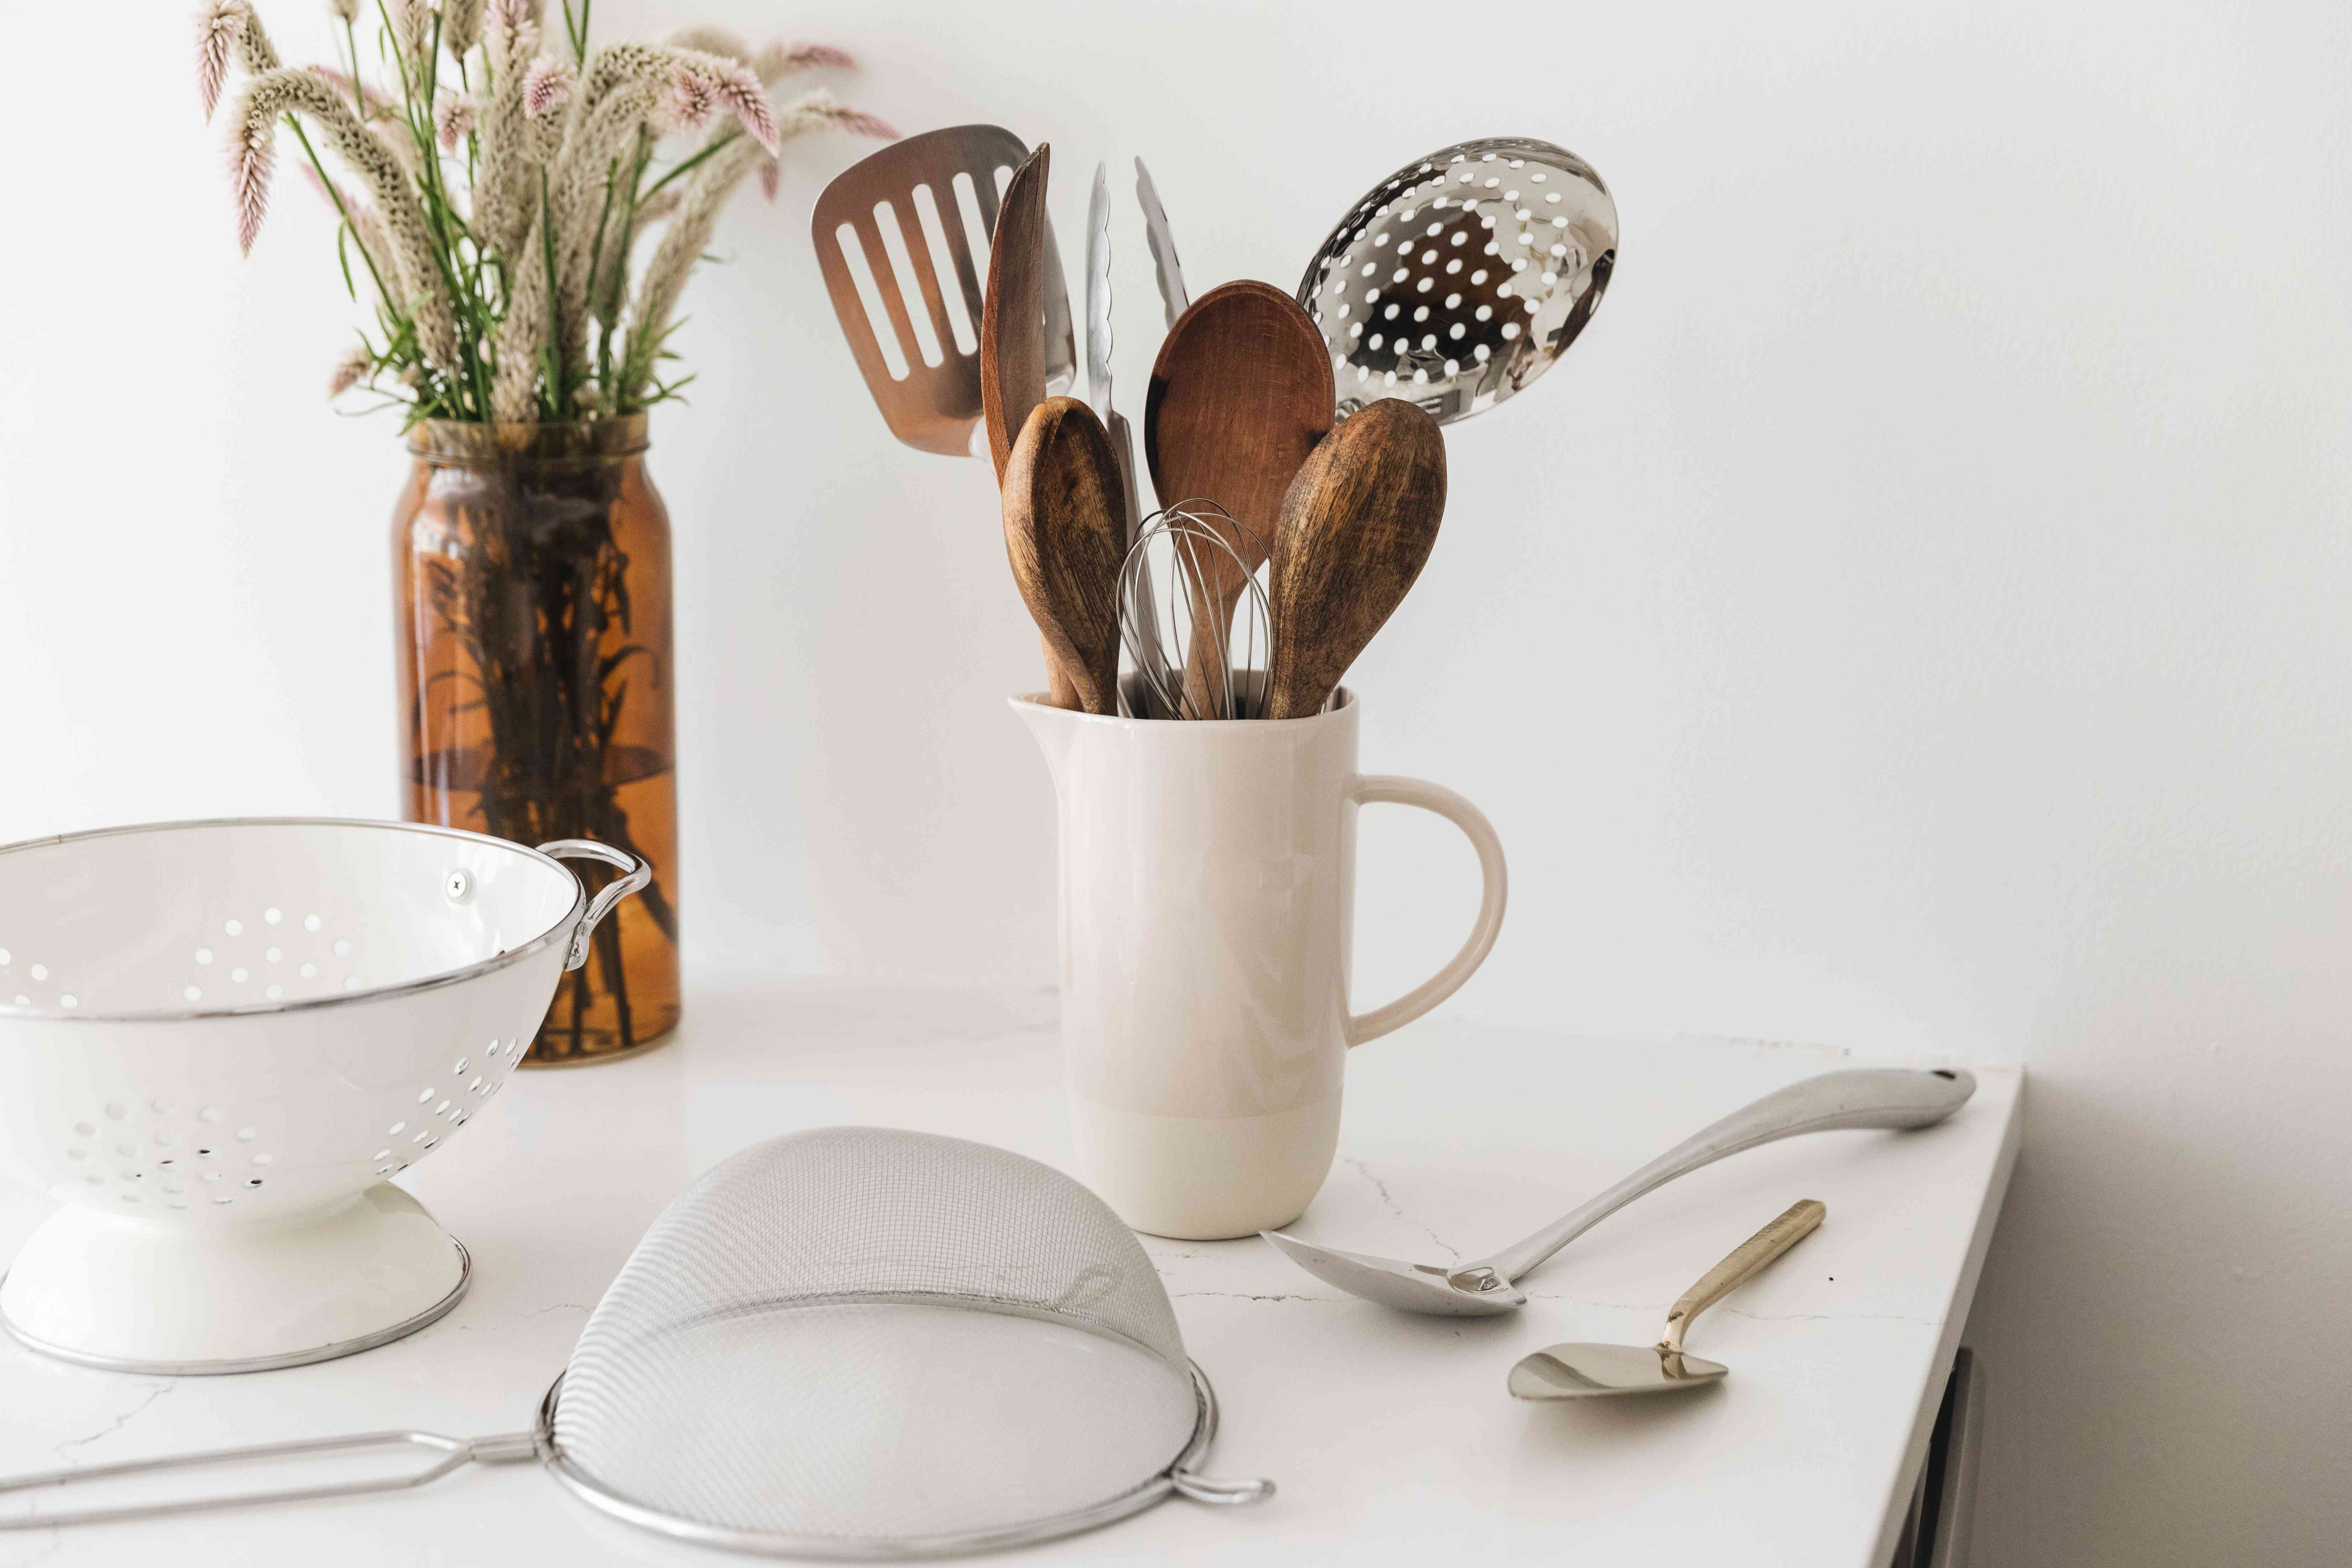 utensils and kitchen tools